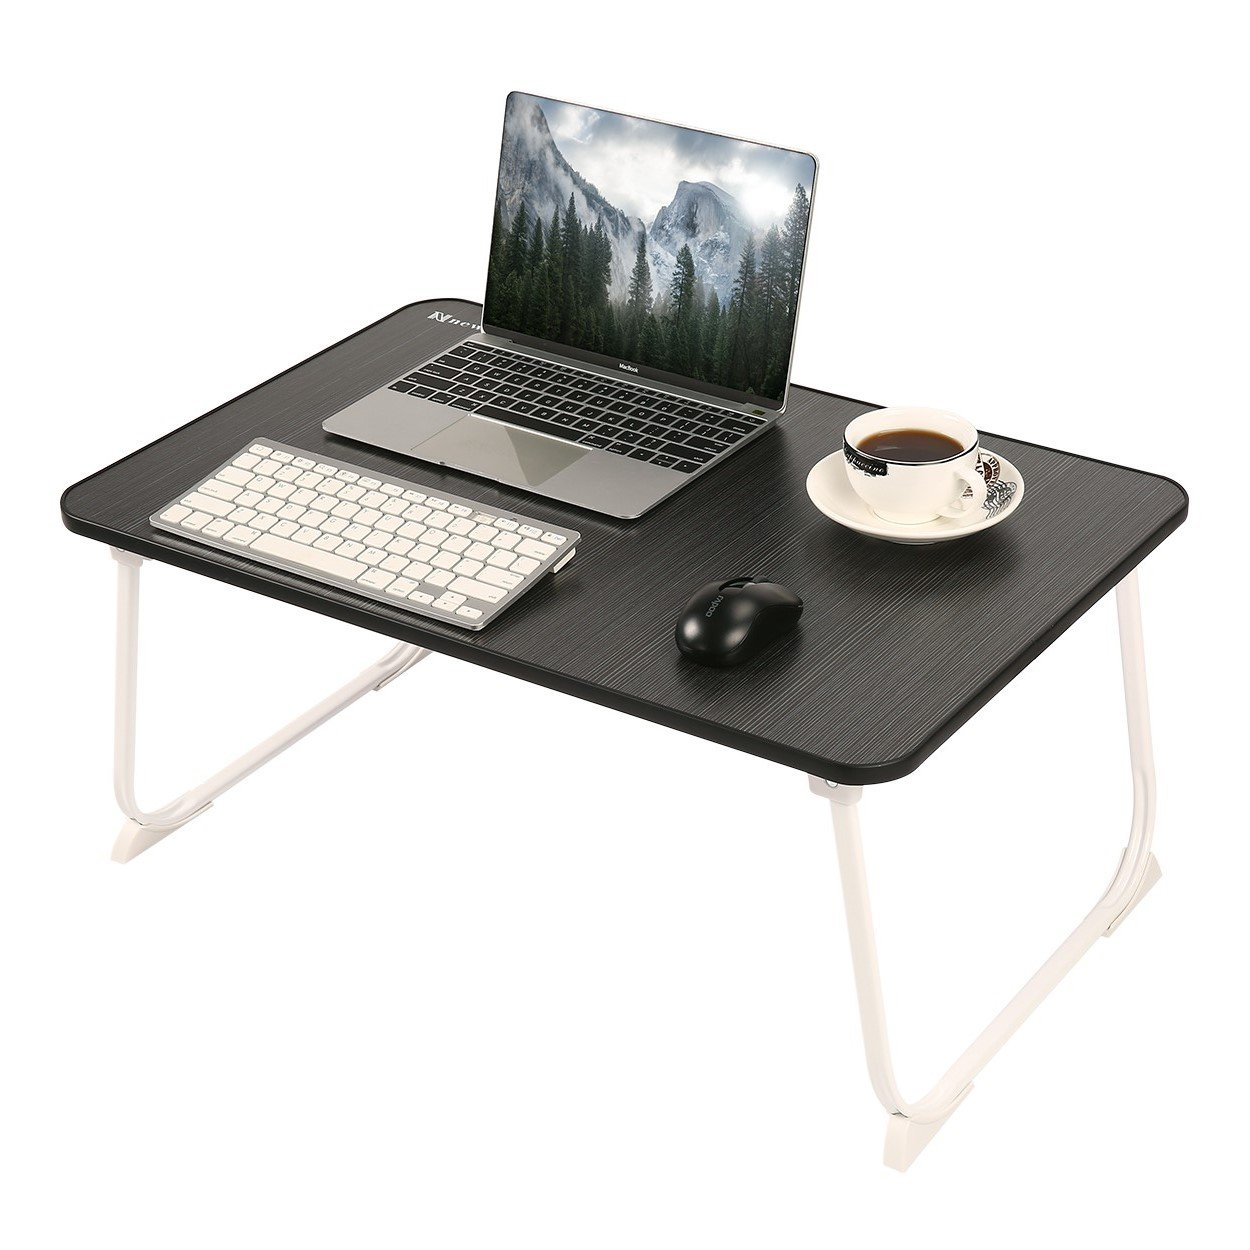 NNEWVANTE Lap Desk, Laptop Table Folding Laptop Desk Notebook Stand Reading Holder Bed TablePortable Breakfast Serving Tray for Bed Couch Sofa Fit for 17